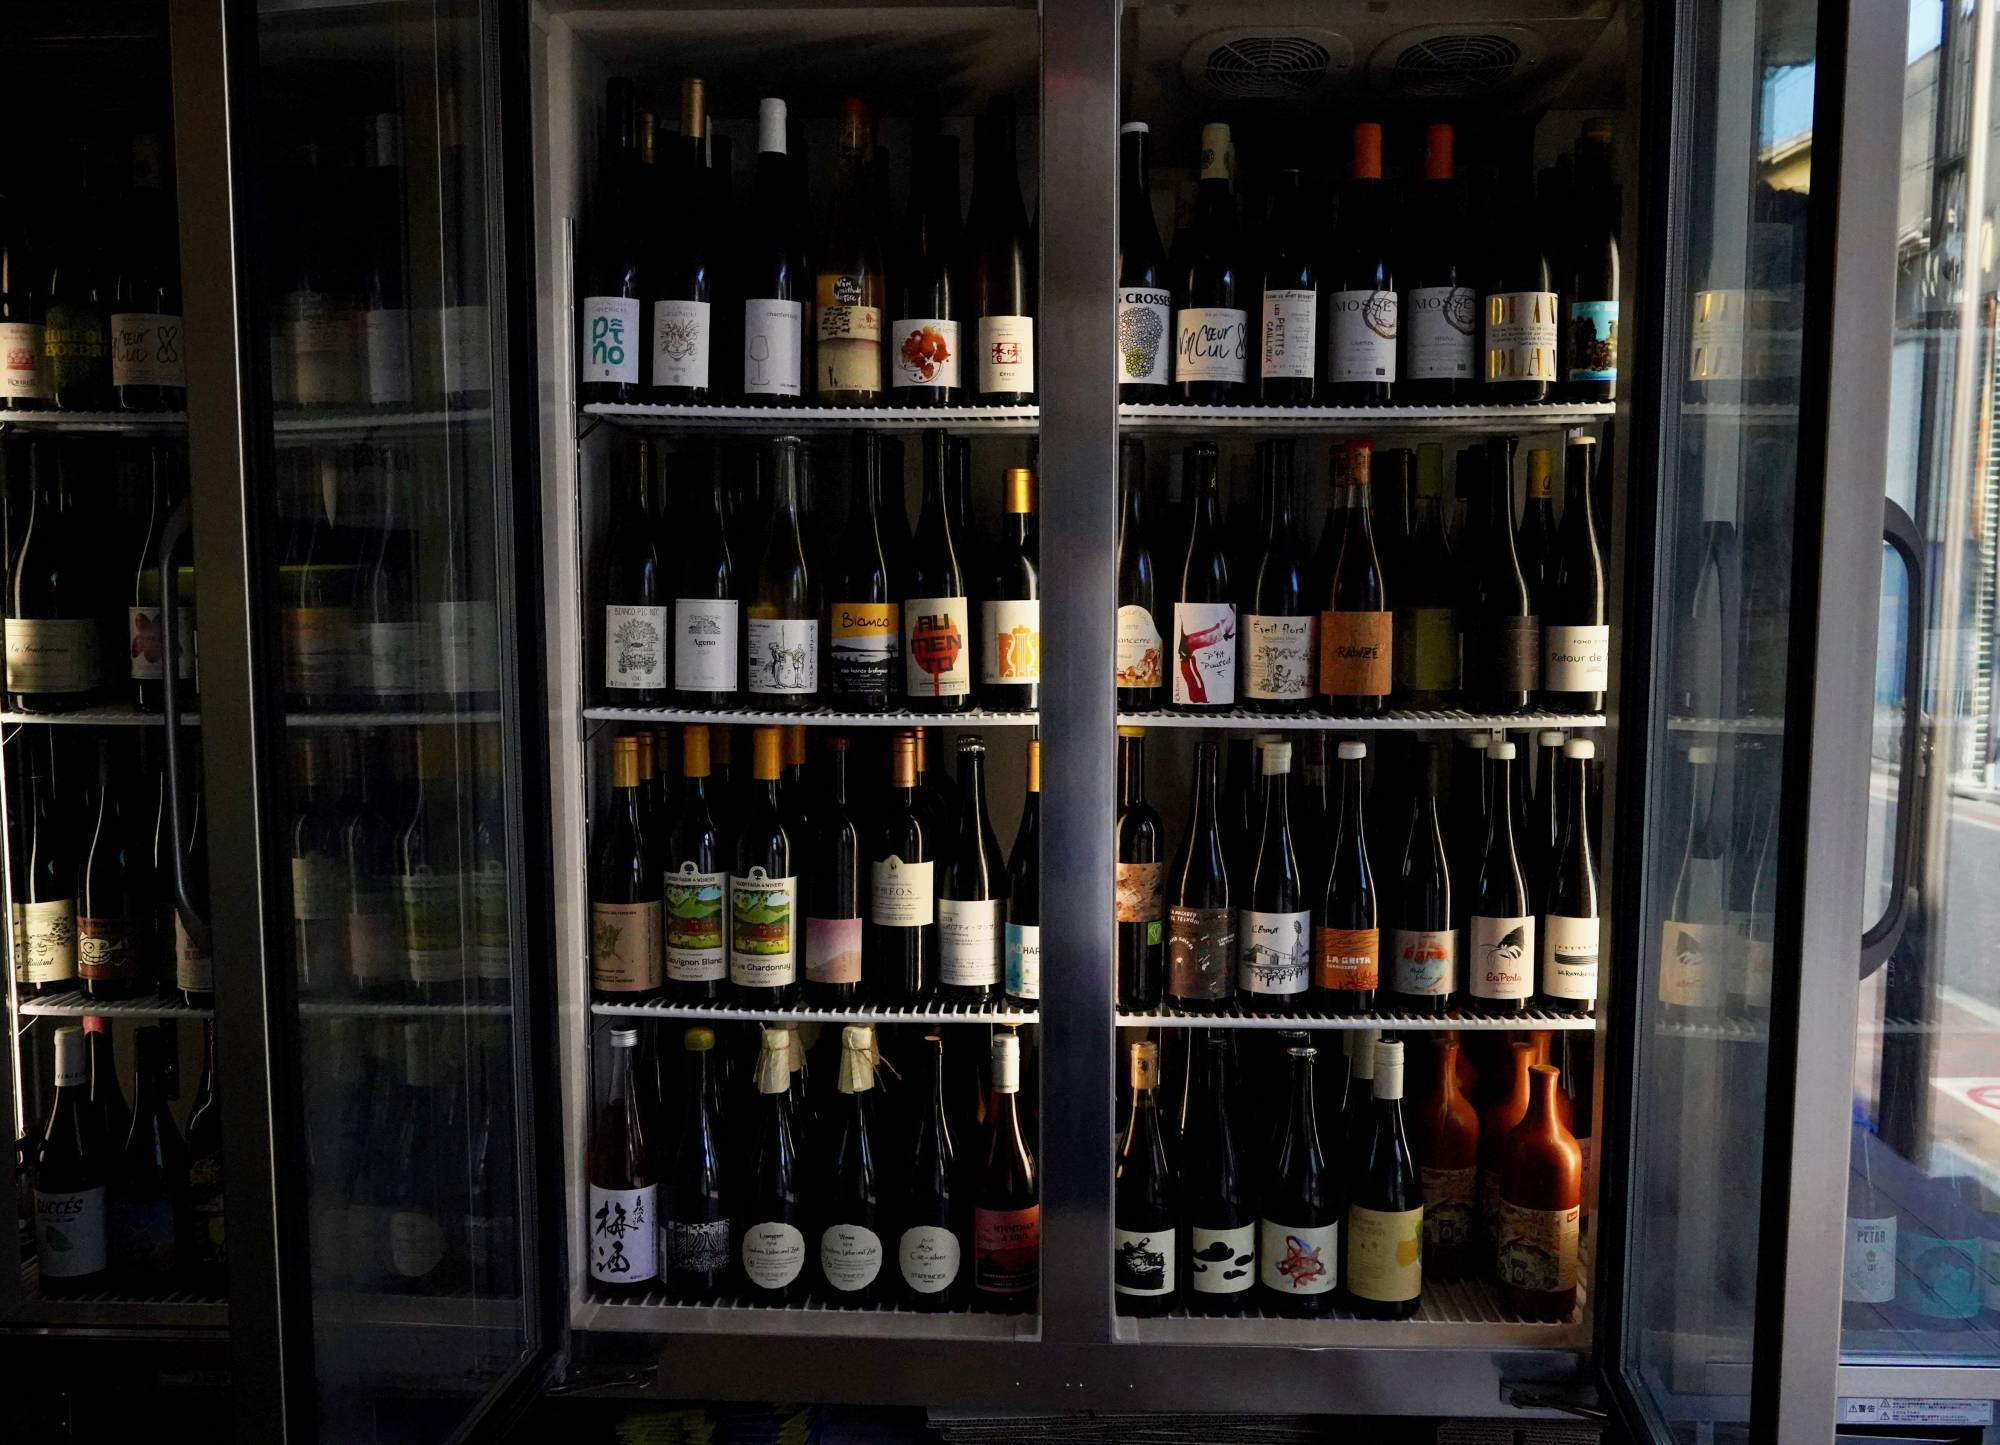 The expansive fridge at No. 502 stocks more than 500 different bottles of natural, low-intervention wine.   ROBBIE SWINNERTON